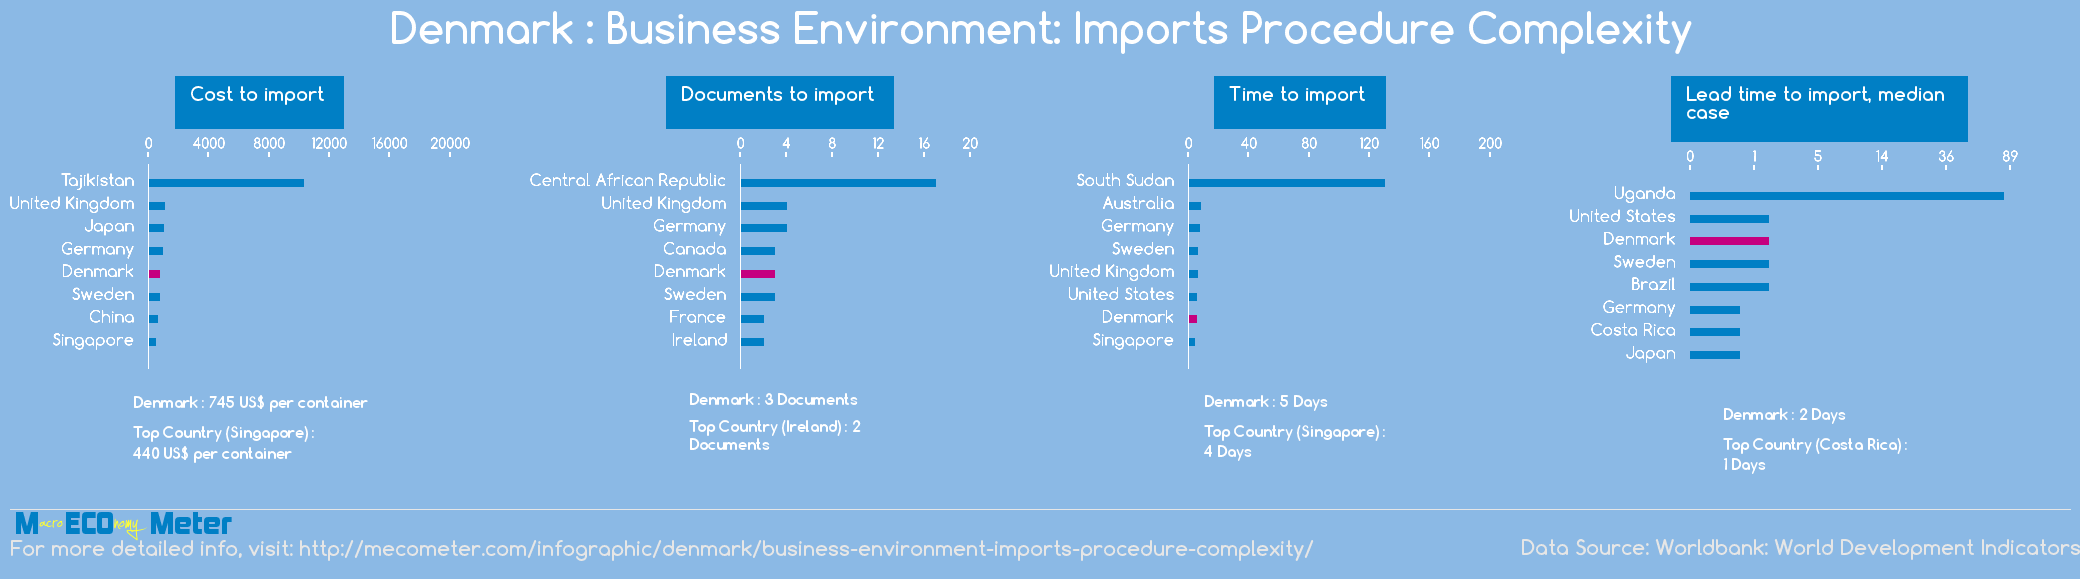 Denmark : Business Environment: Imports Procedure Complexity